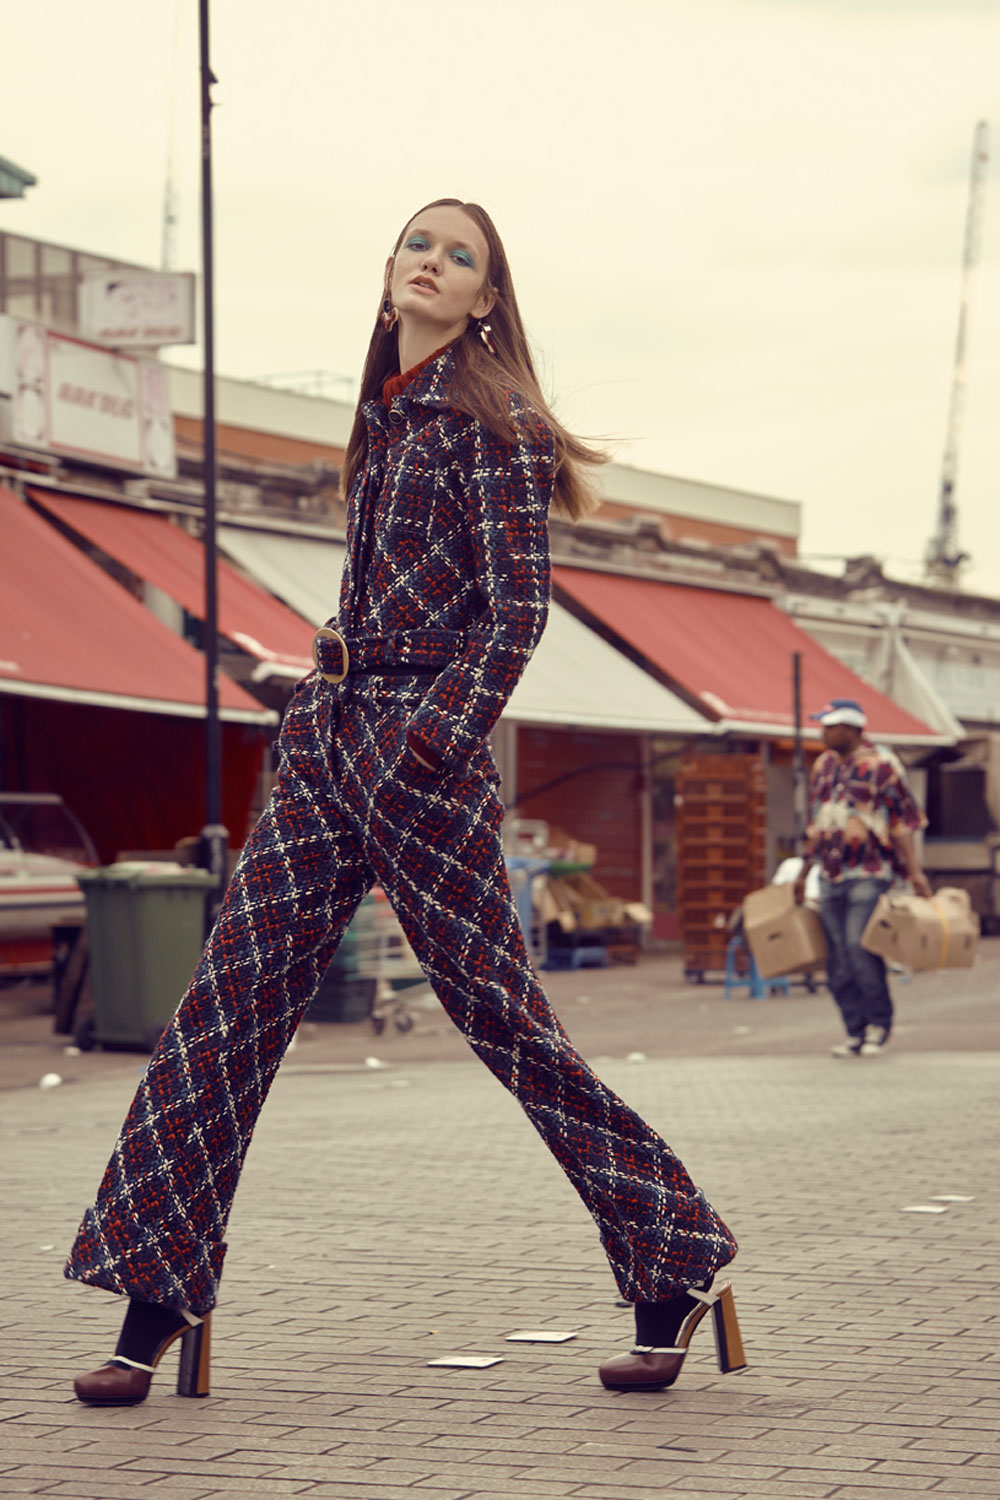 WW03Editorial_PlaidsAndTweed_London-Market5.jpg